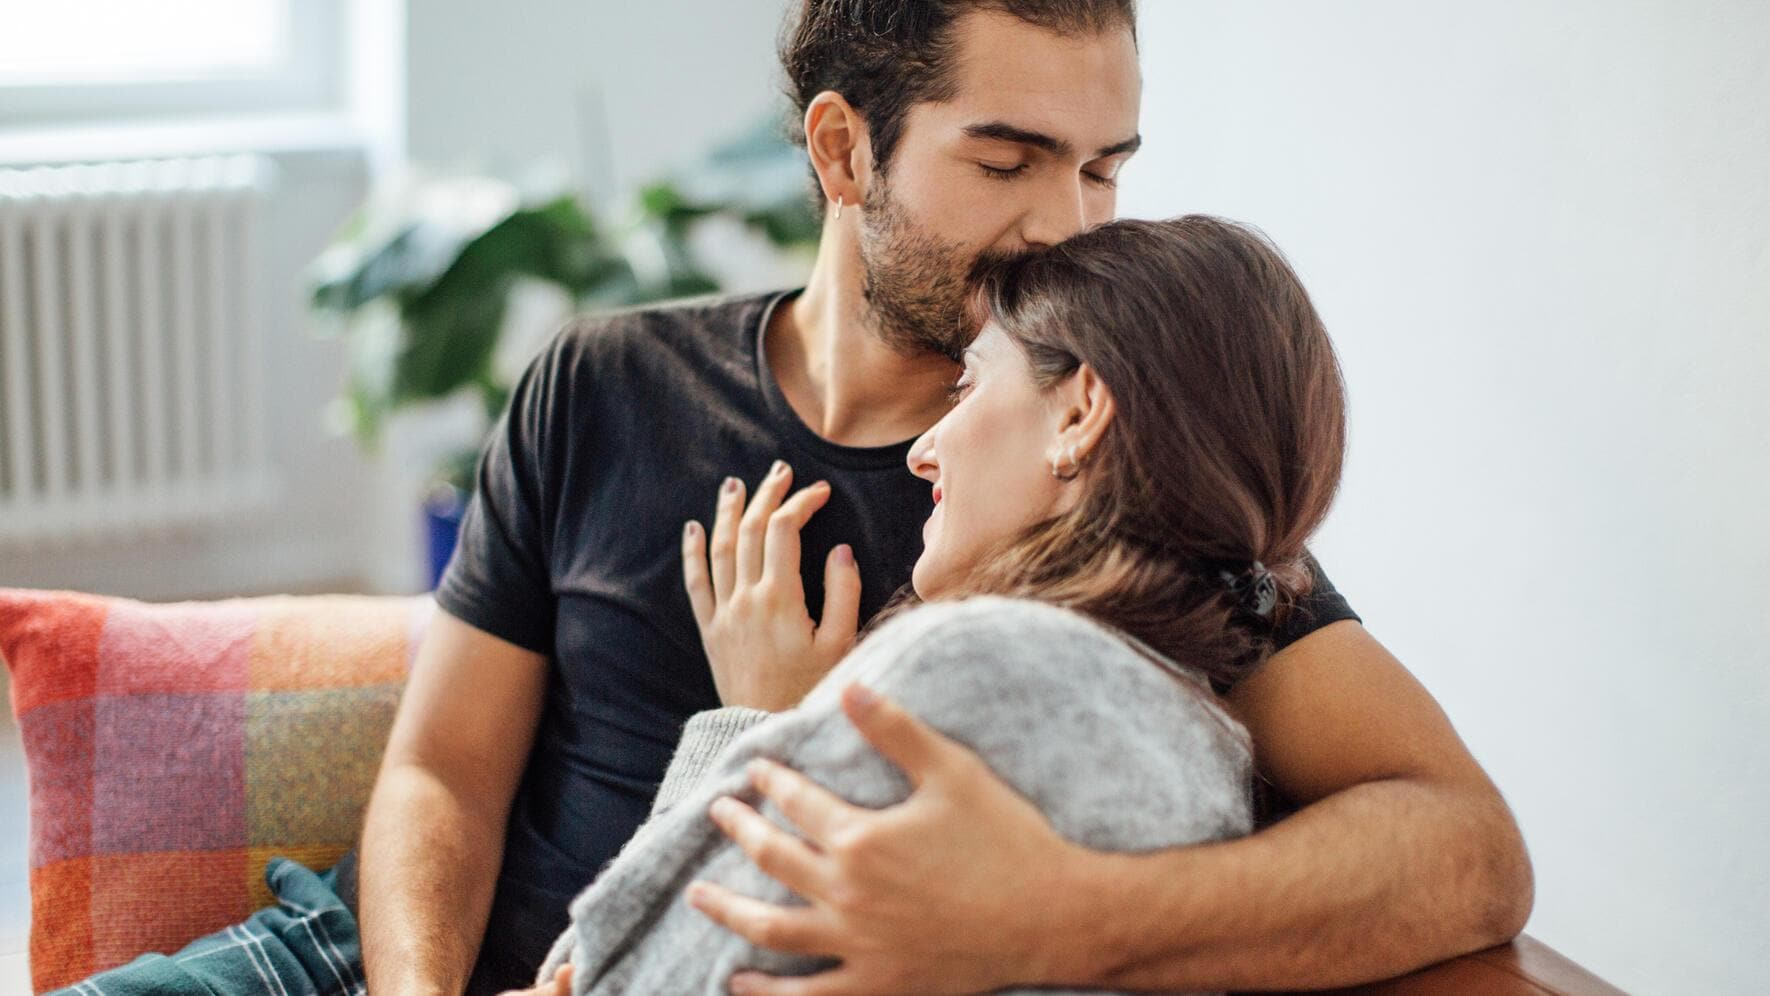 Young man embracing girlfriend while kissing on her forehead in living room at home